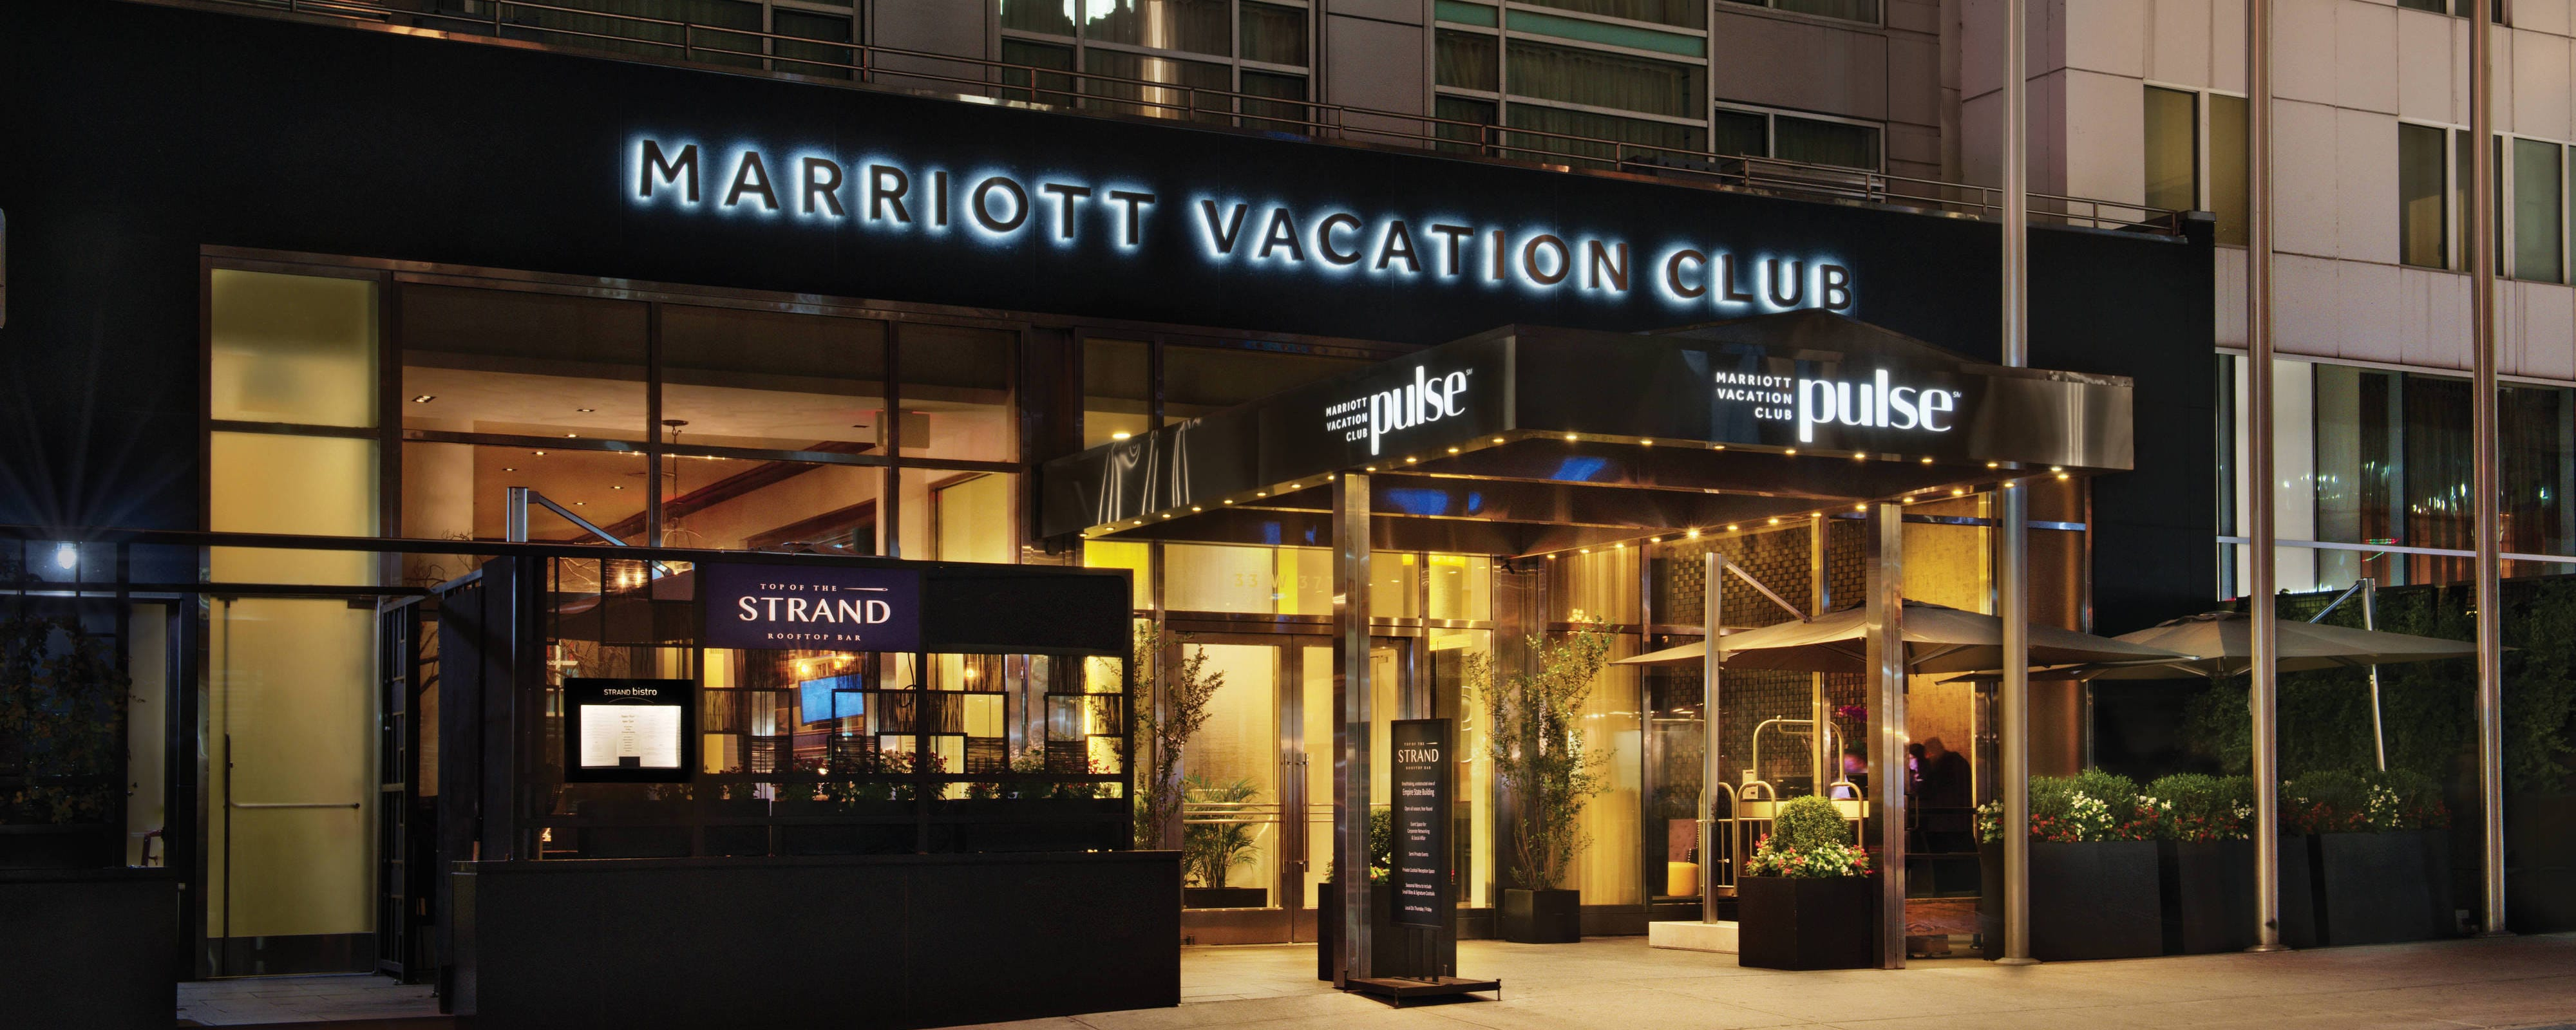 Manhattan Vacation Rentals | Marriott Vacation Club Pulse, New York City